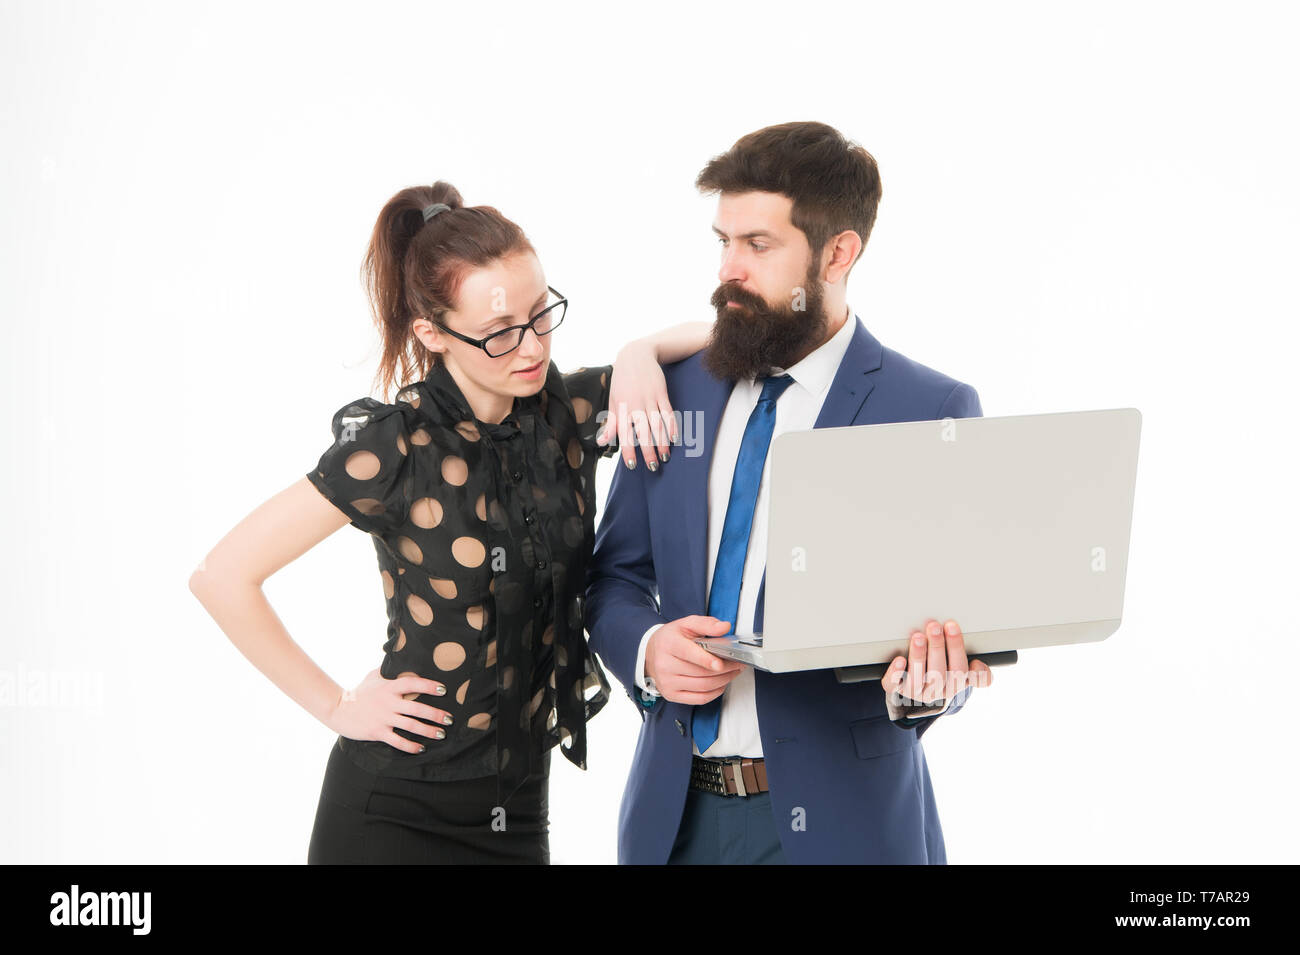 Financial indicators. Couple working using laptop. Business lady check what is done. Lady boss satisfied with business indicators. Manager show result. Report business result. Financial report. - Stock Image